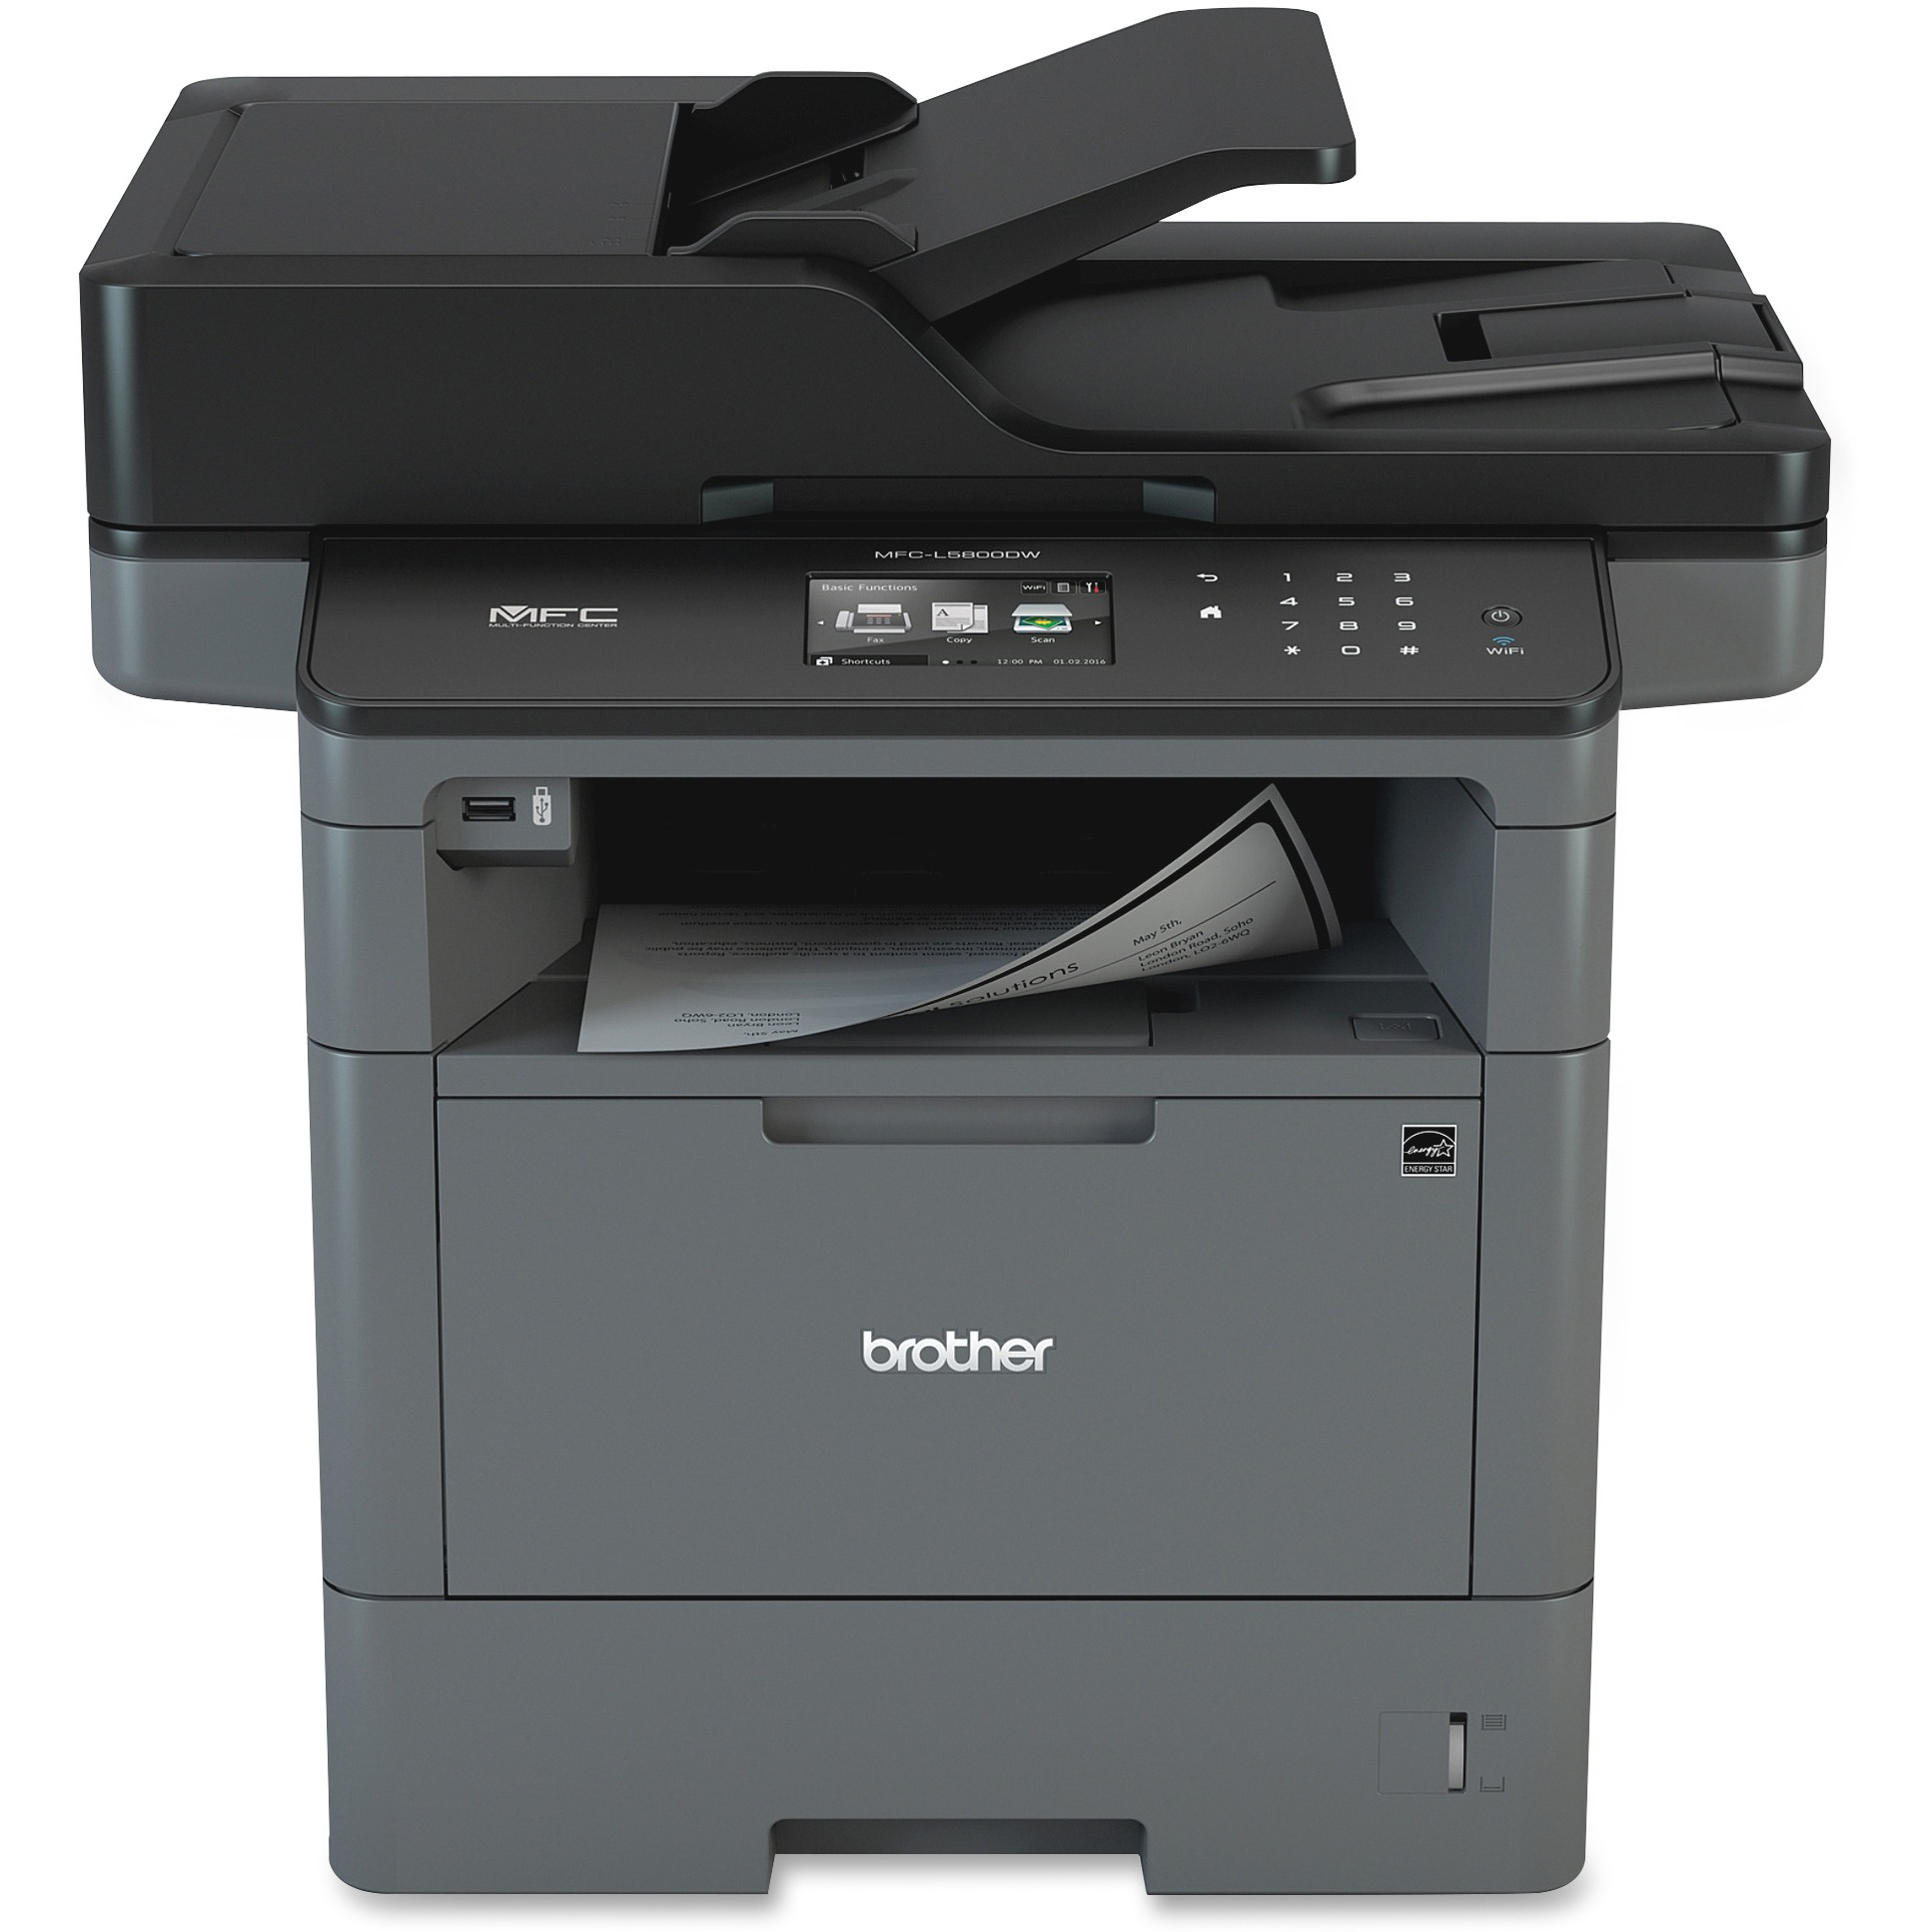 Brother MFC-L5800DW Wireless Monochrome All-in-One Laser Printer, Copy/Fax/Print/Scan